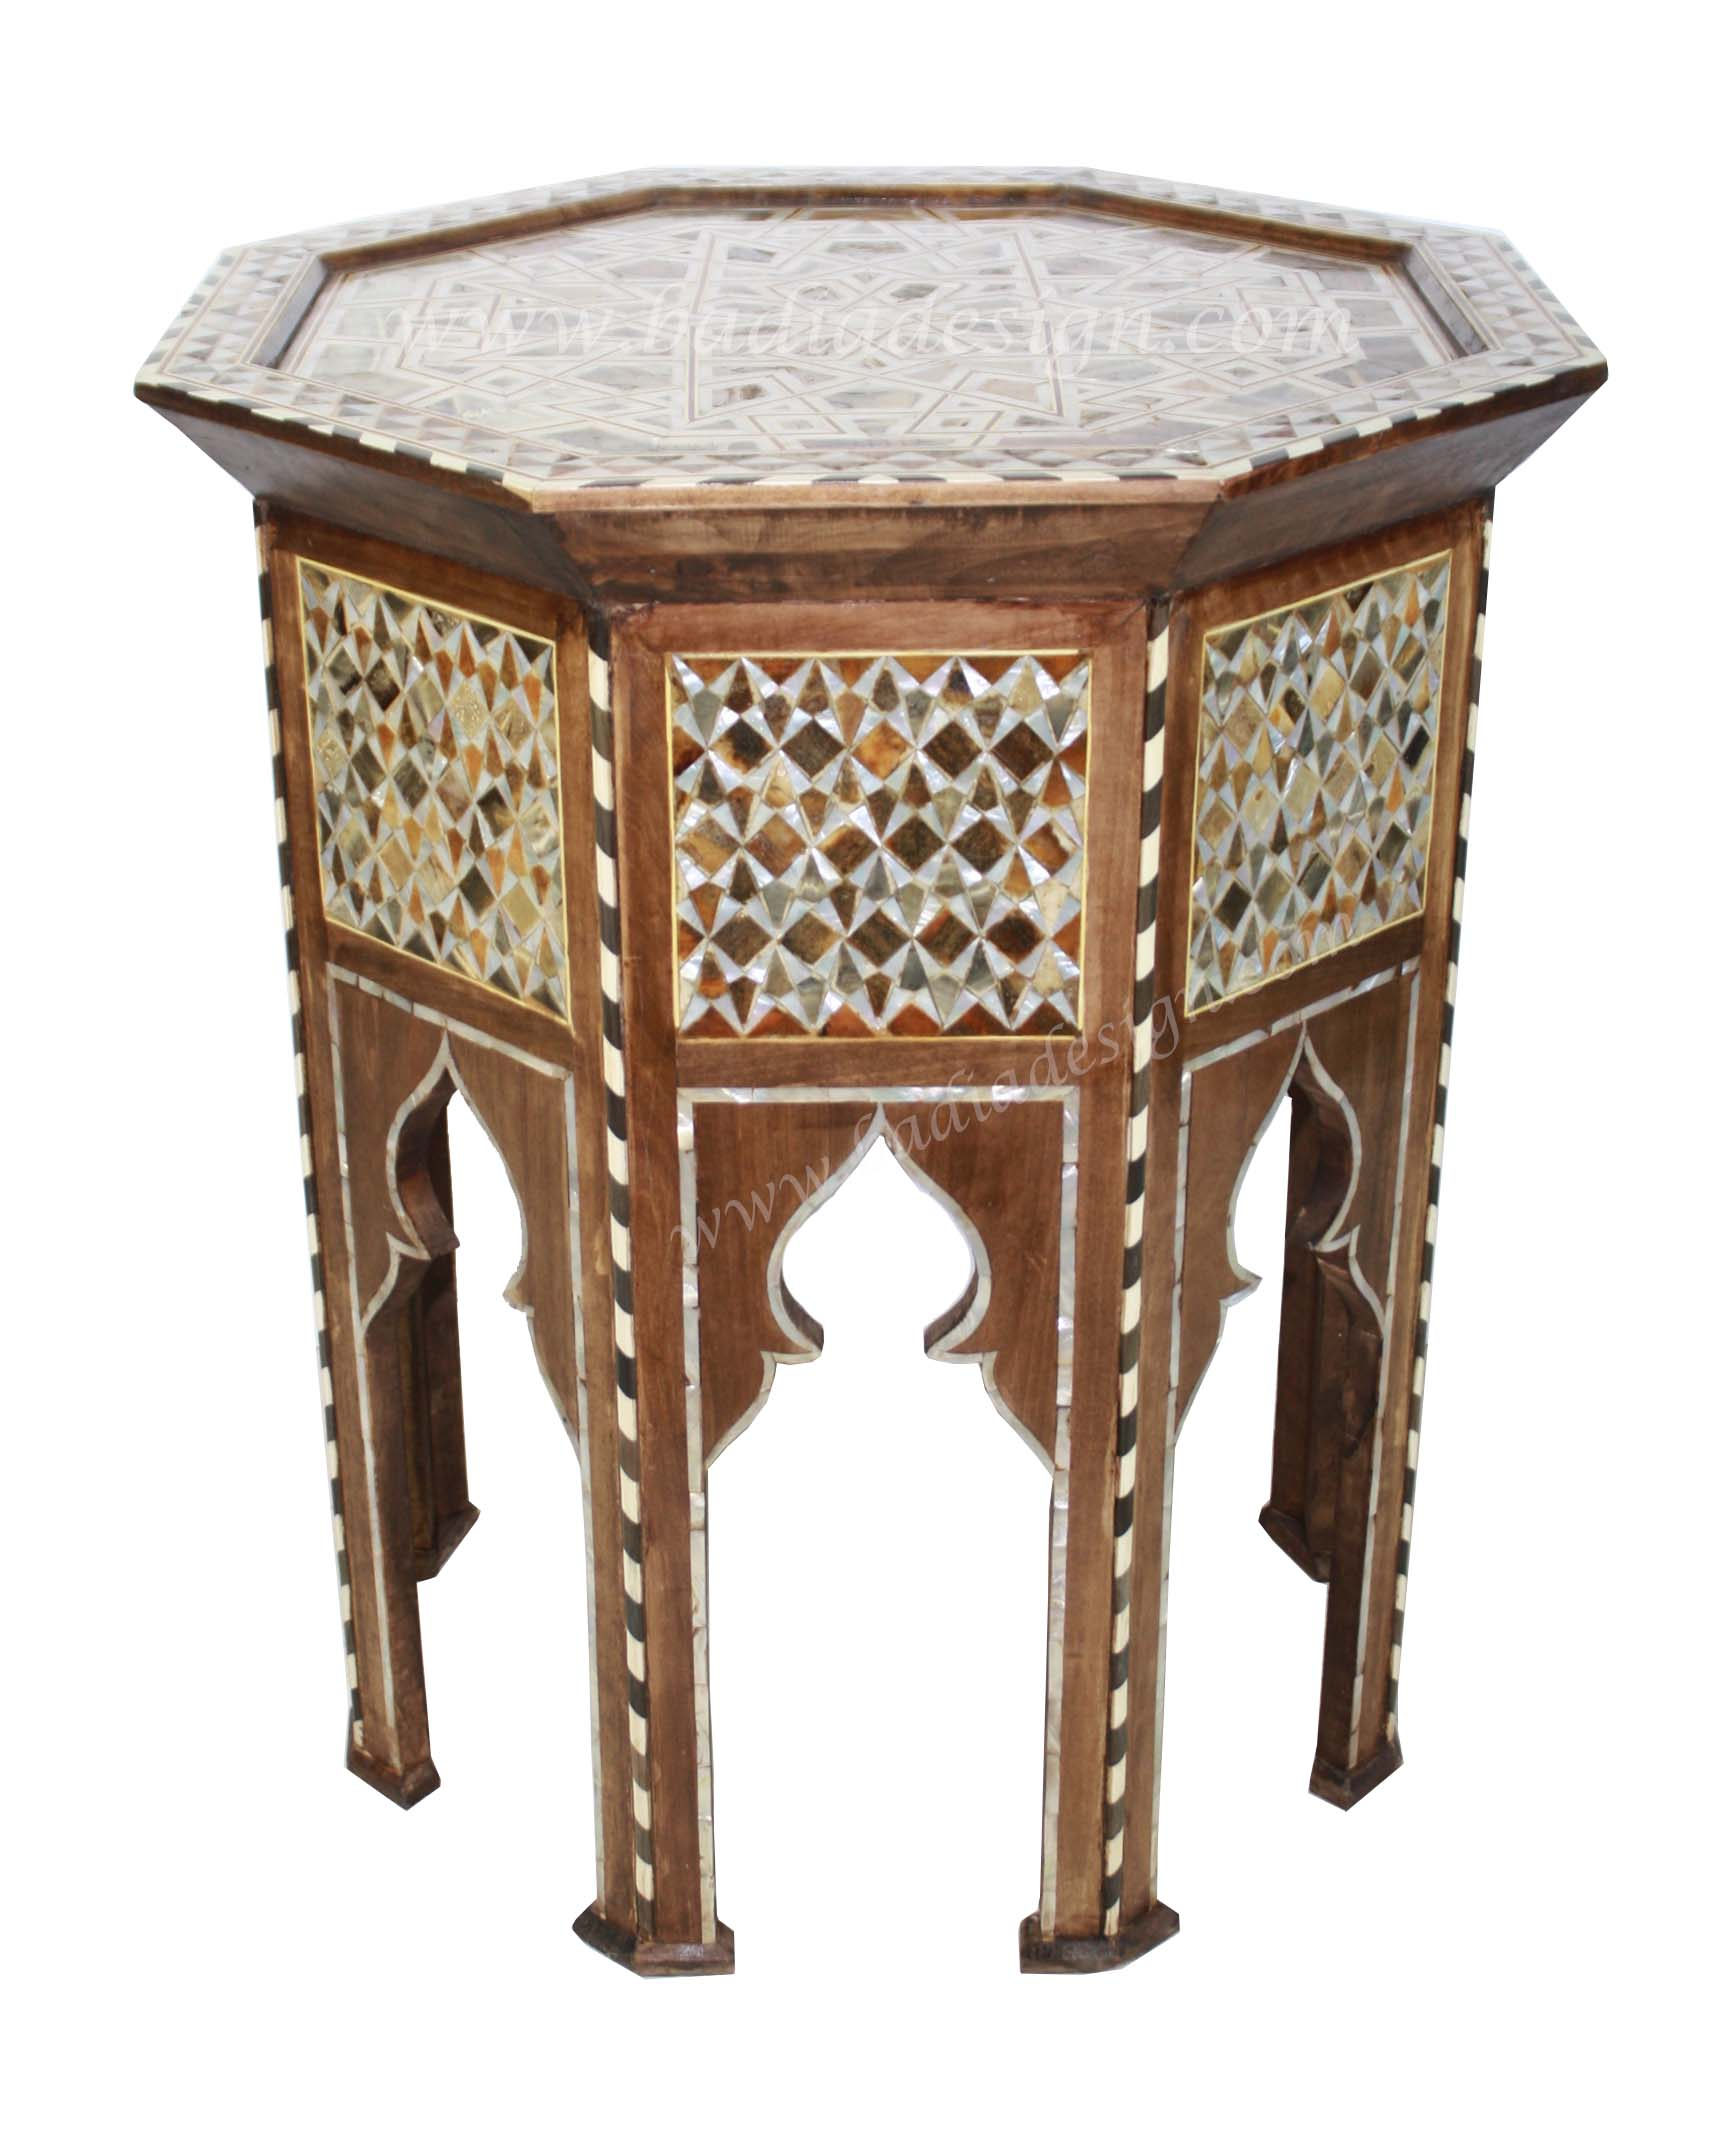 syrian-design-furniture-los-angeles-mop-st063-1.jpg